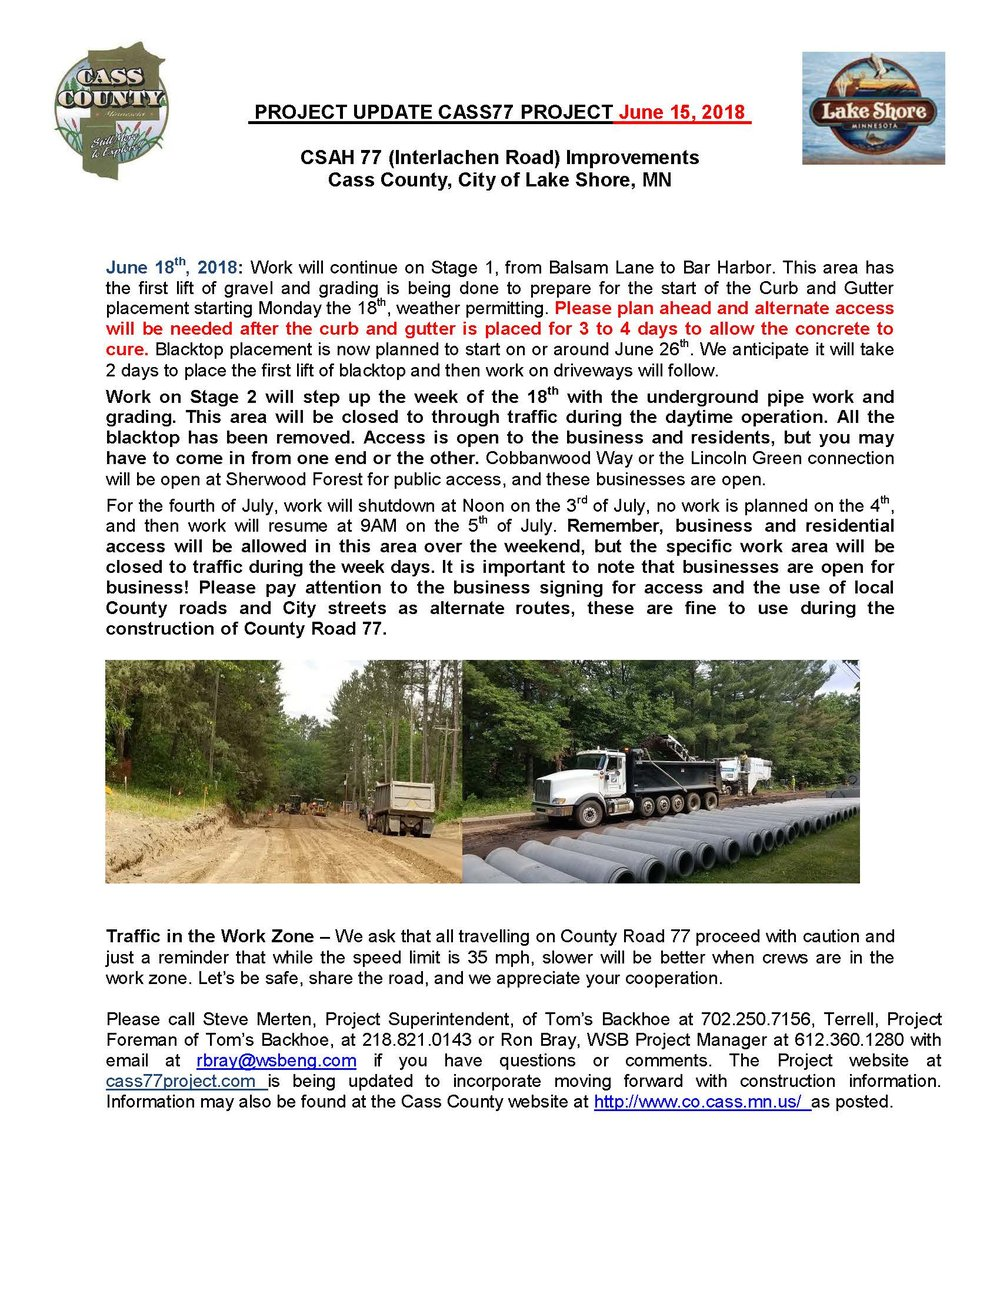 Cass County CSAH 77 Project update June 15 2018.jpg